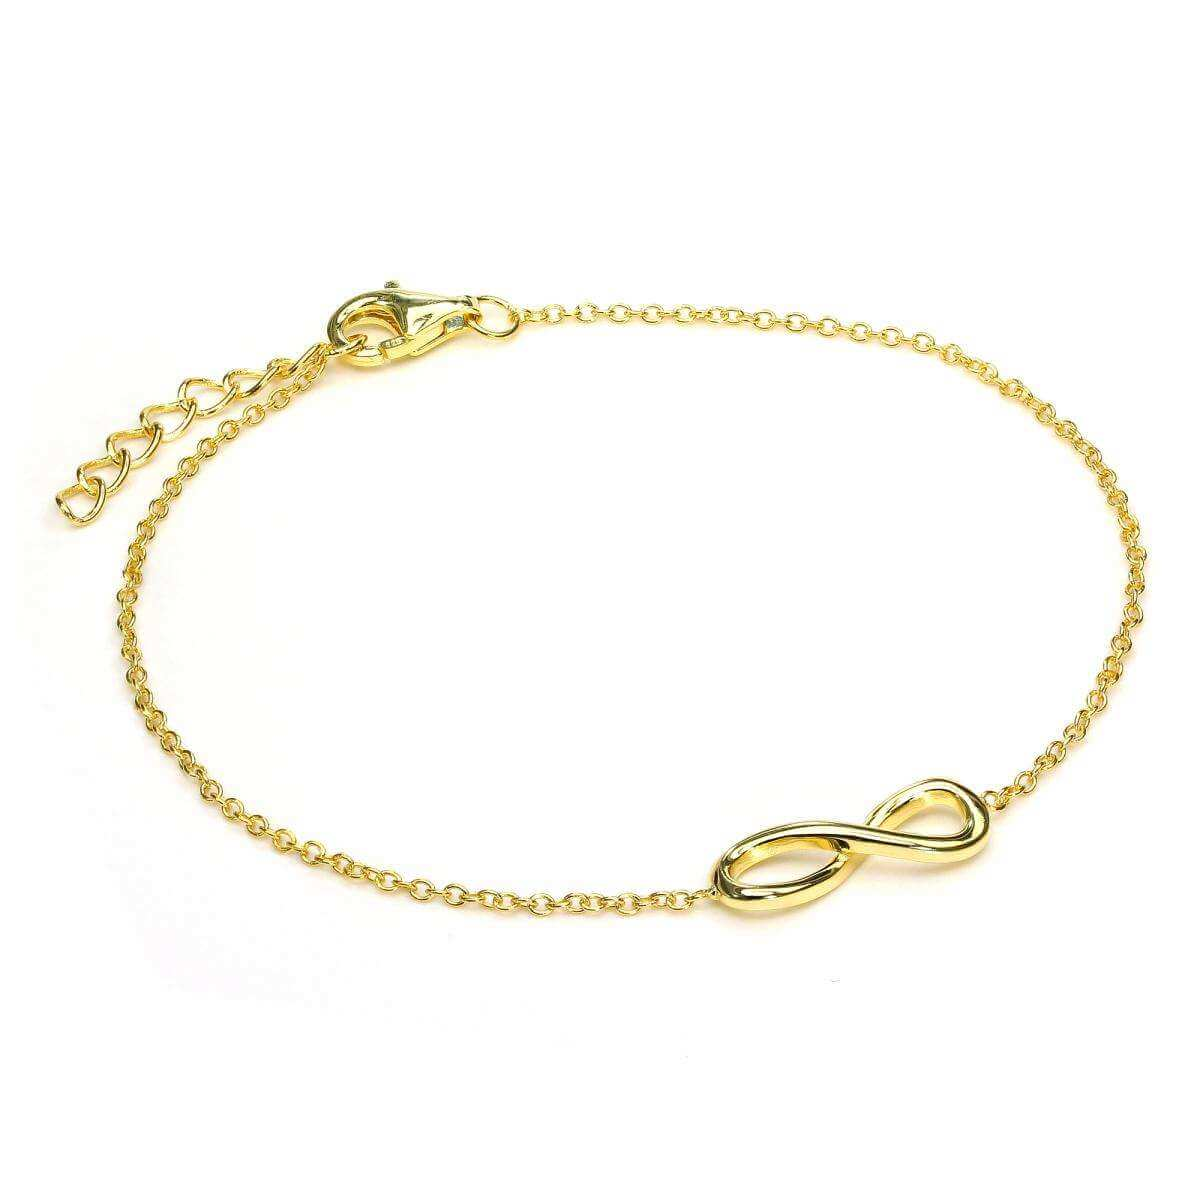 Gold Plated Sterling Silver Fine Infinity Bracelet with Clasp